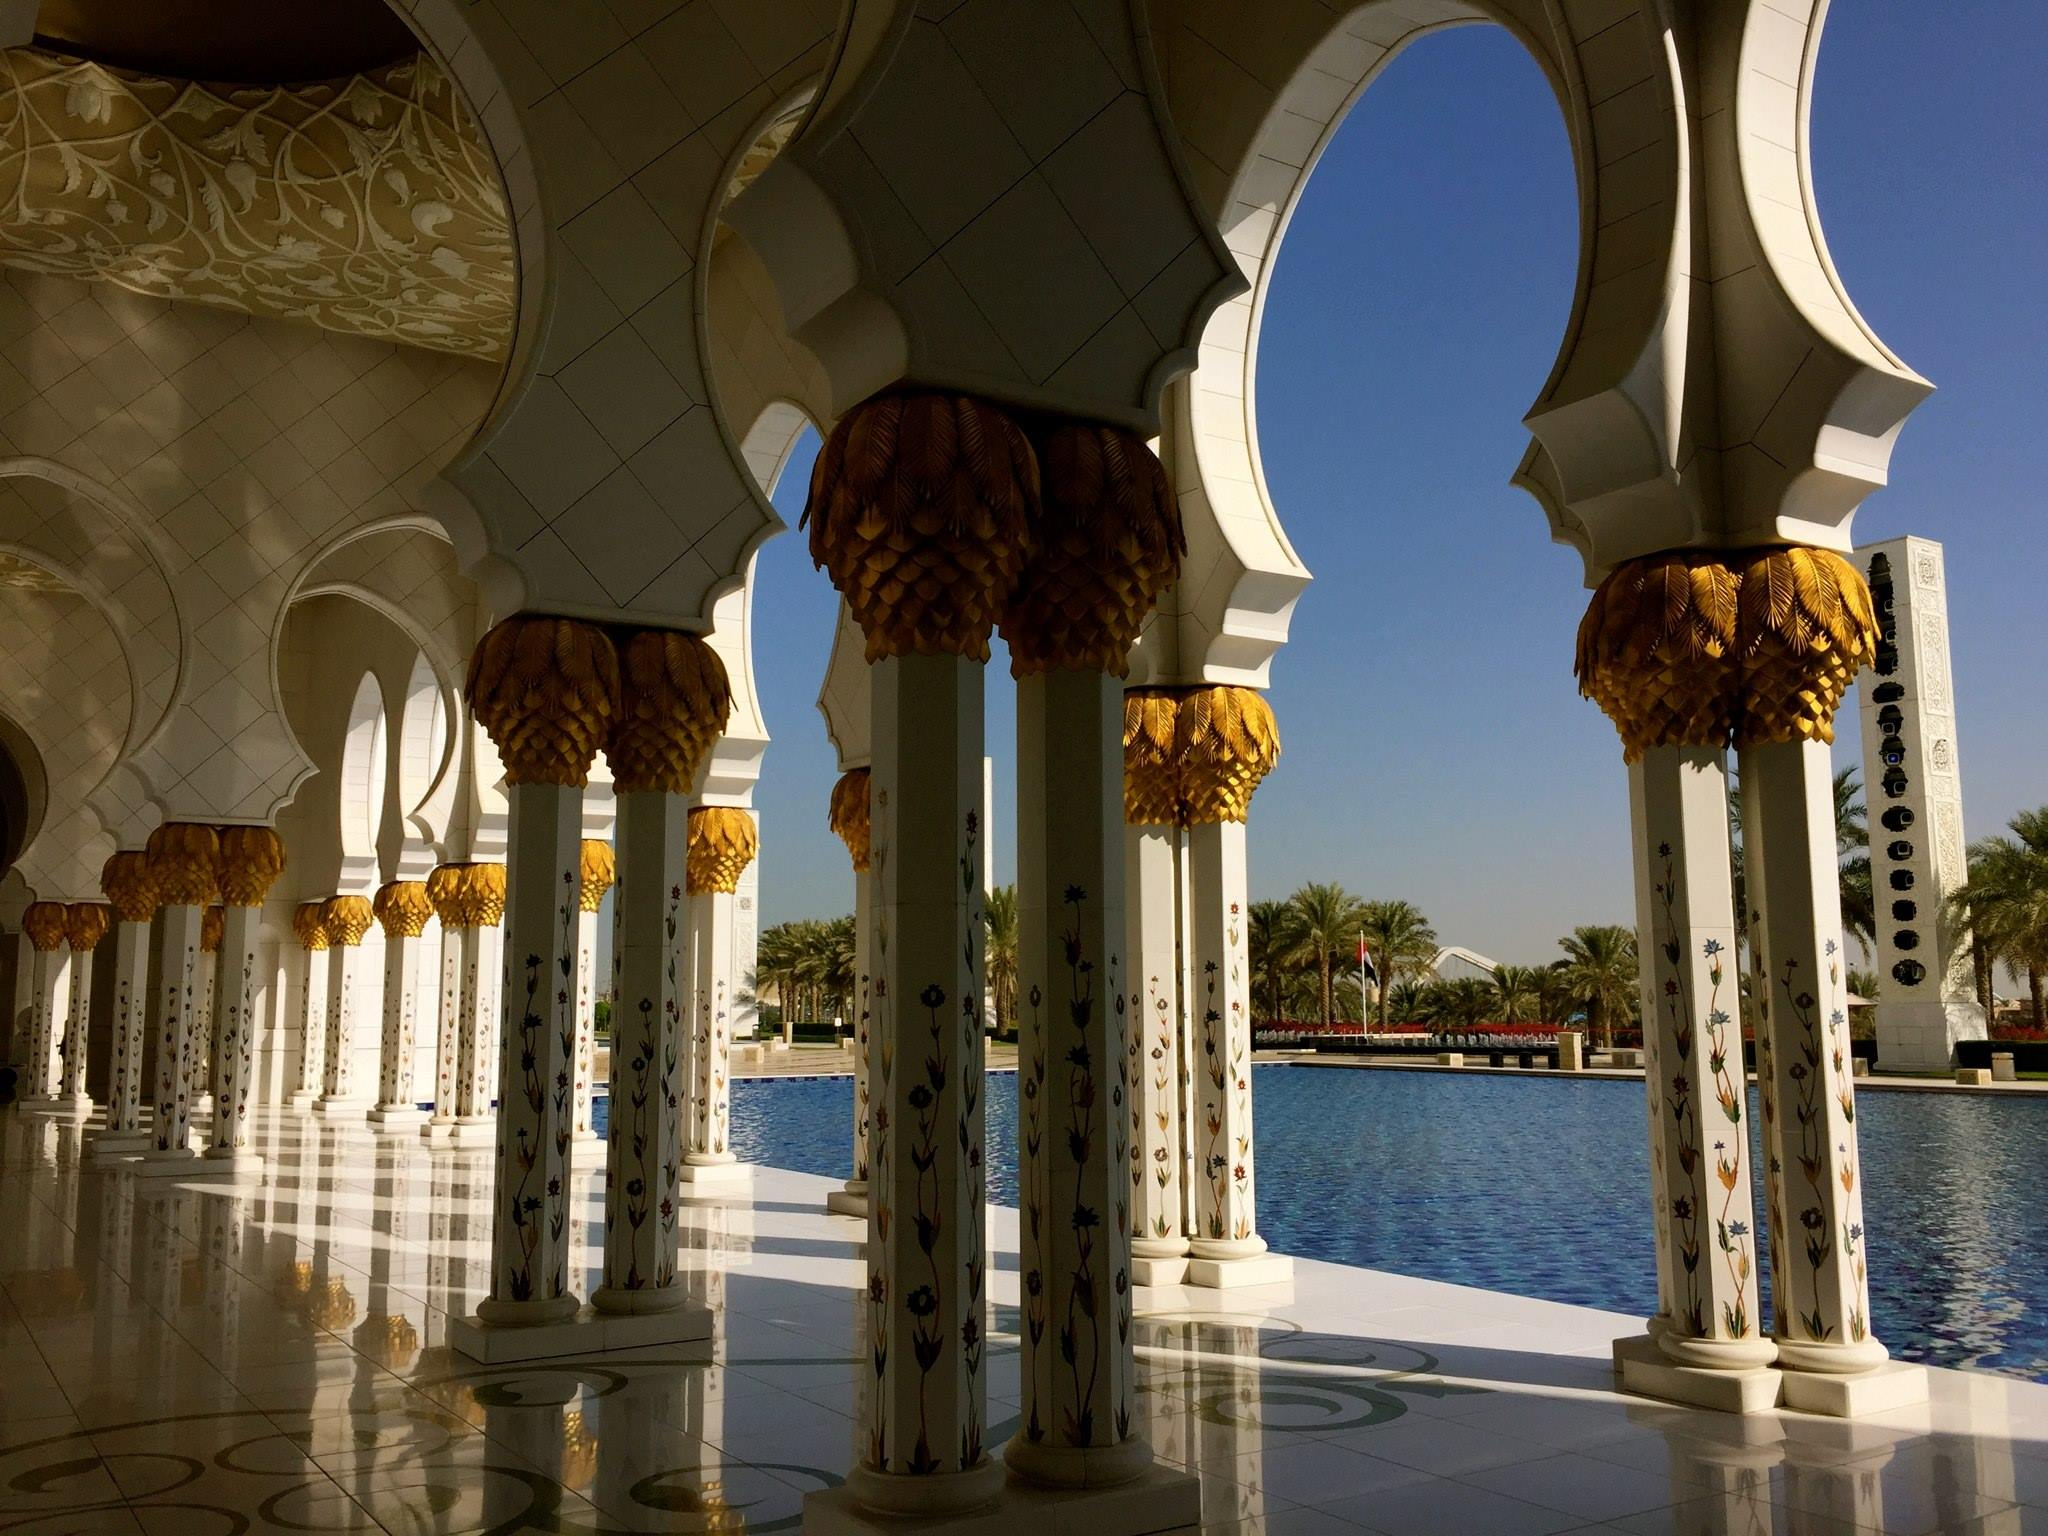 Sheikh Zayed Mosque in Abu Dhabi, Photo by Bernd Slotta